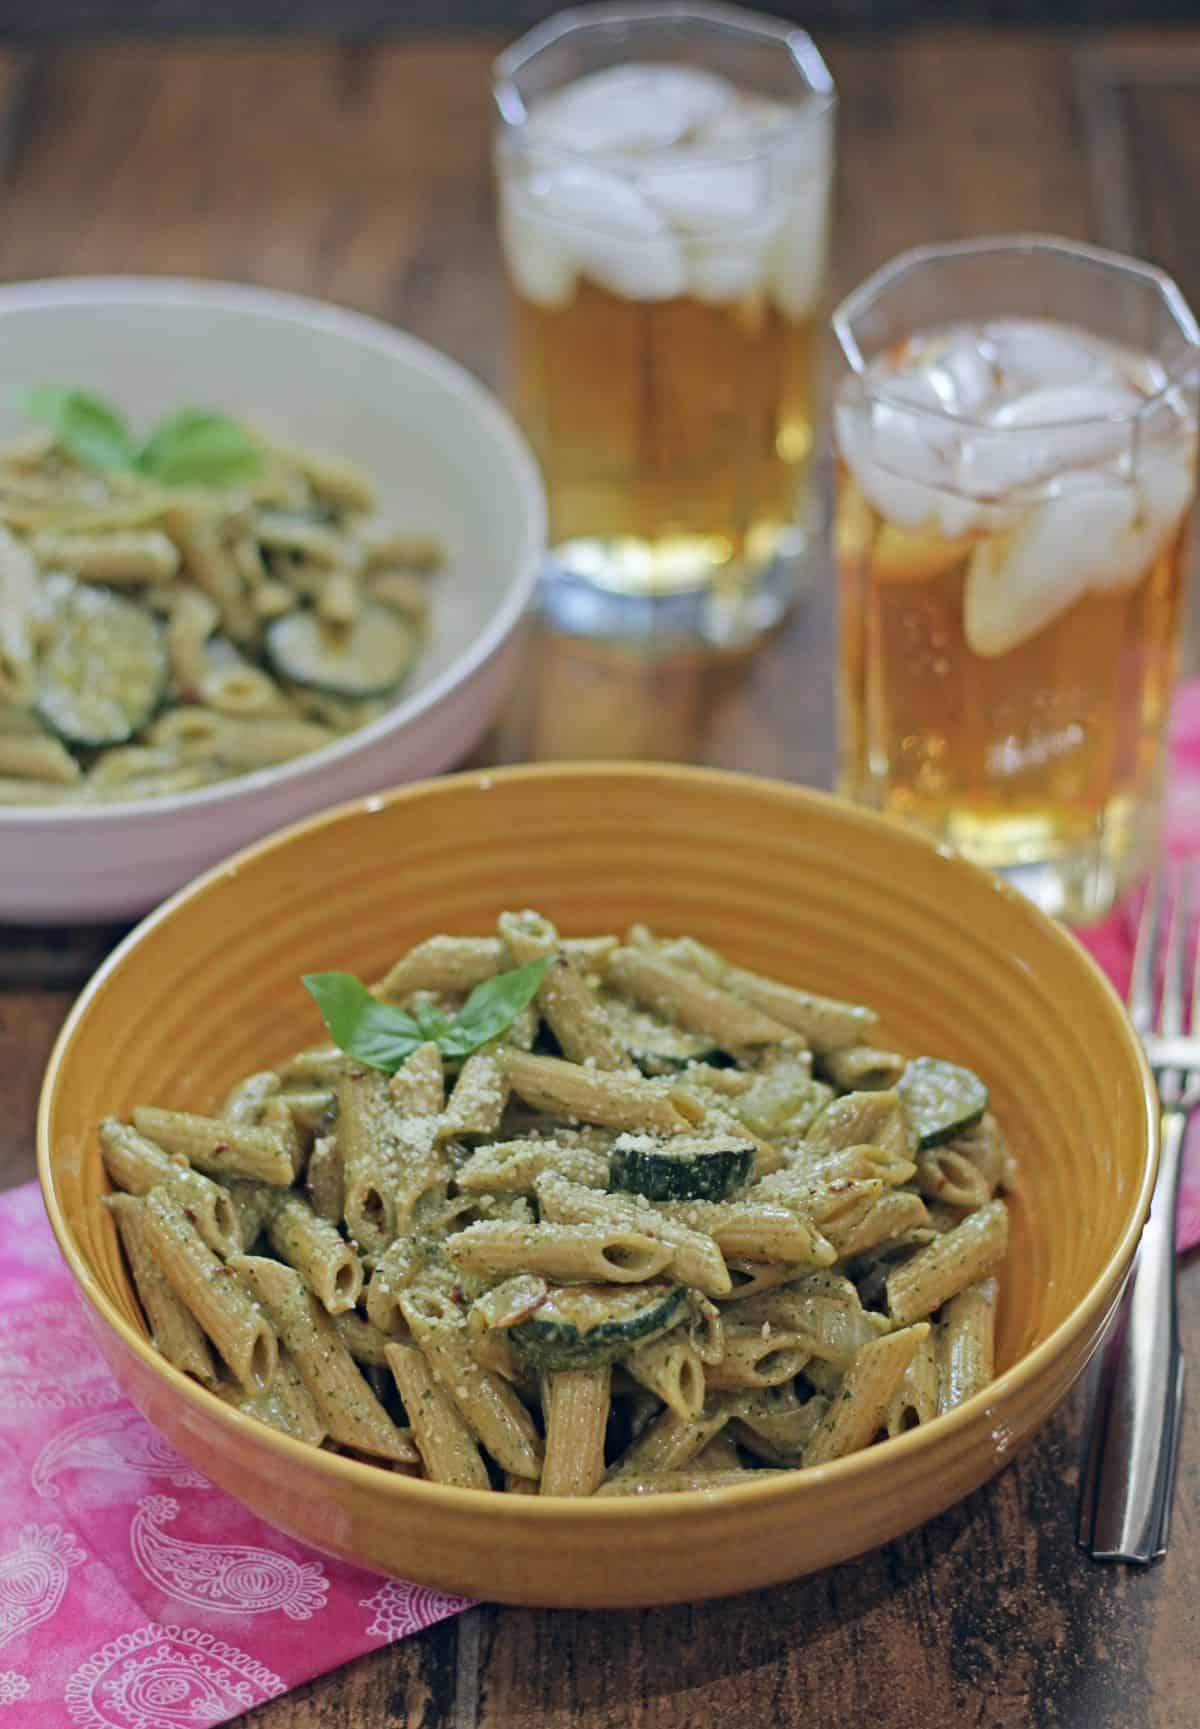 Pasta with zucchini in a yellow bowl with a drink in the background.